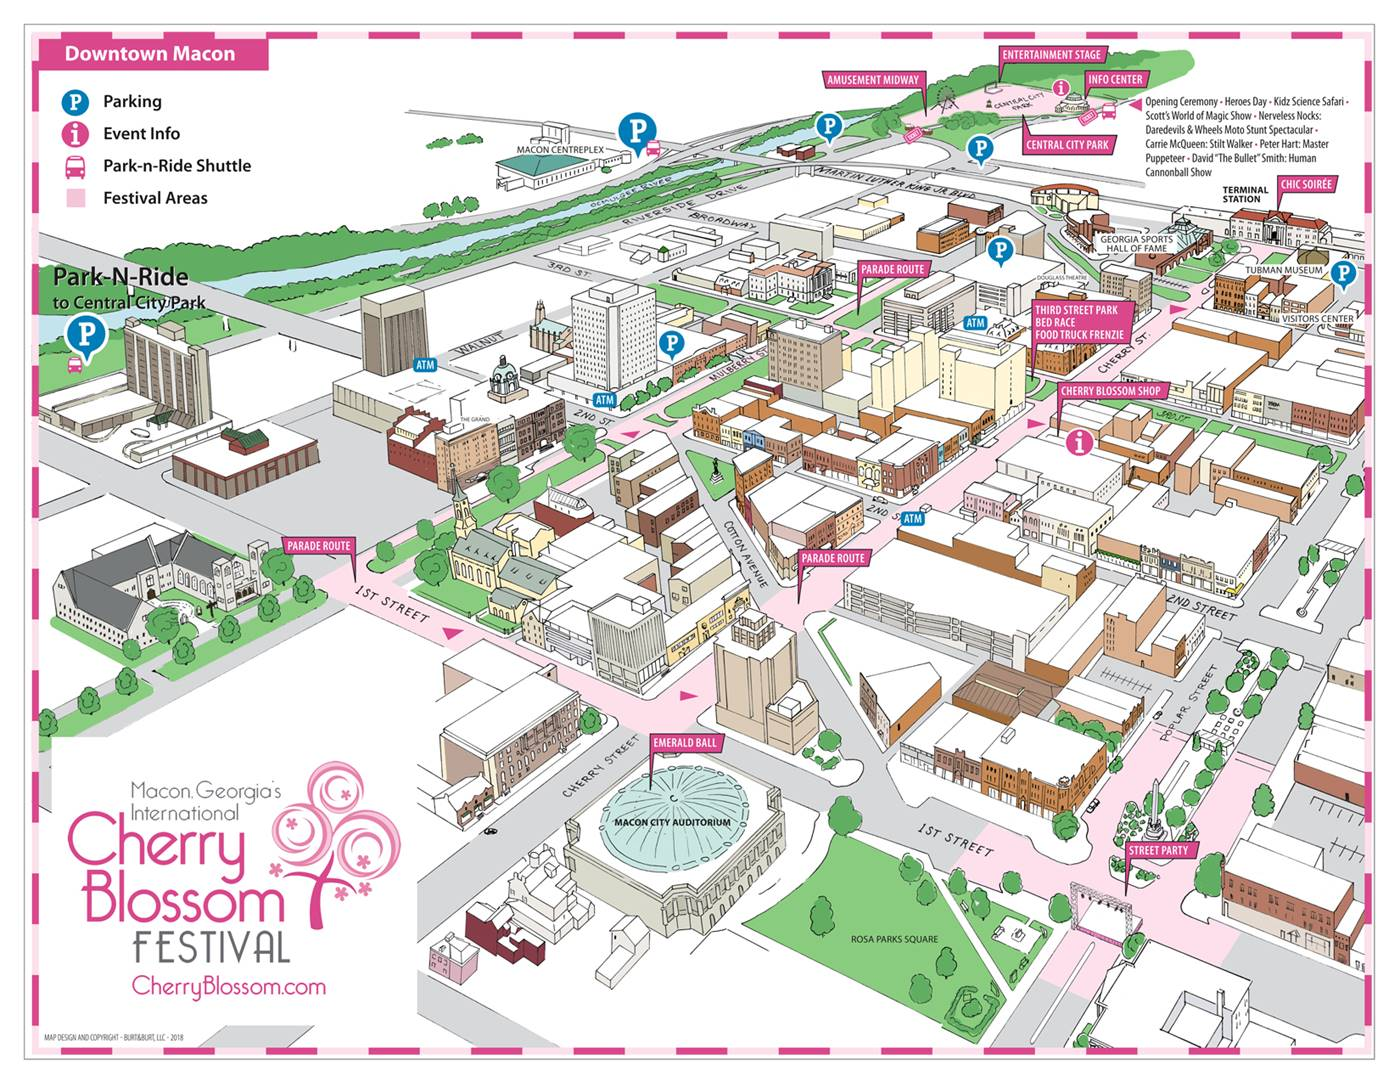 Maps Macon Georgias International Cherry Blossom Festival